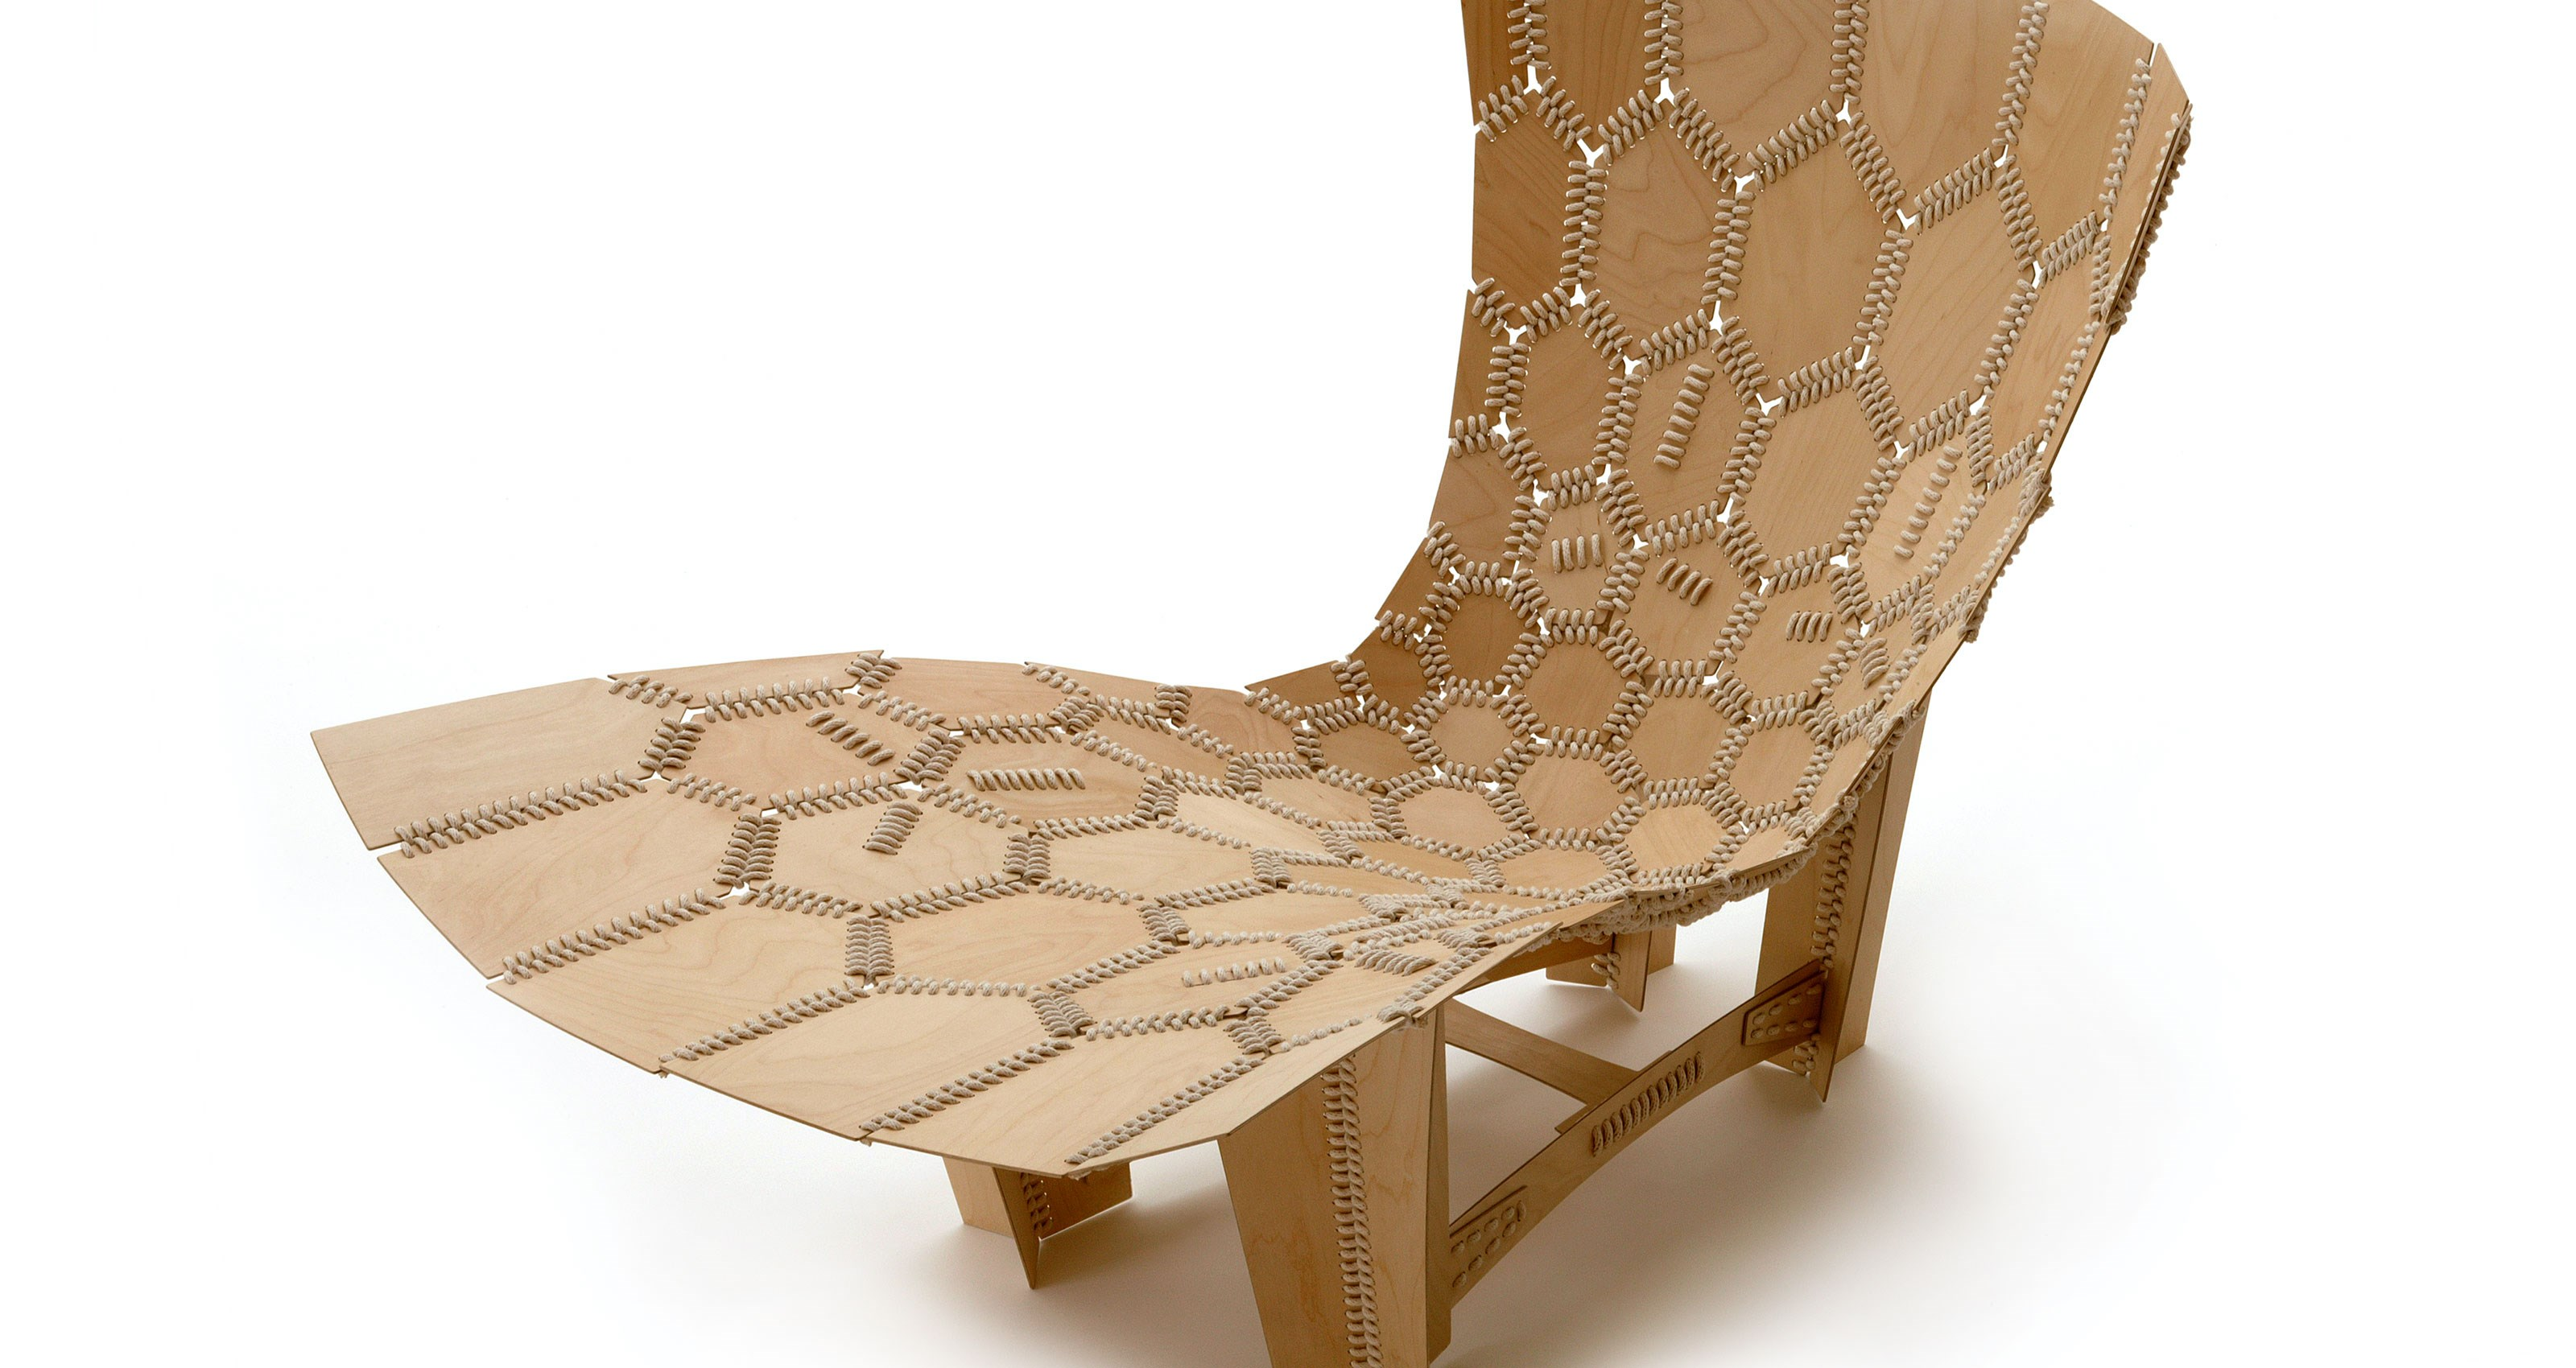 state-of-the-art sustainable furniture QWQYYTL